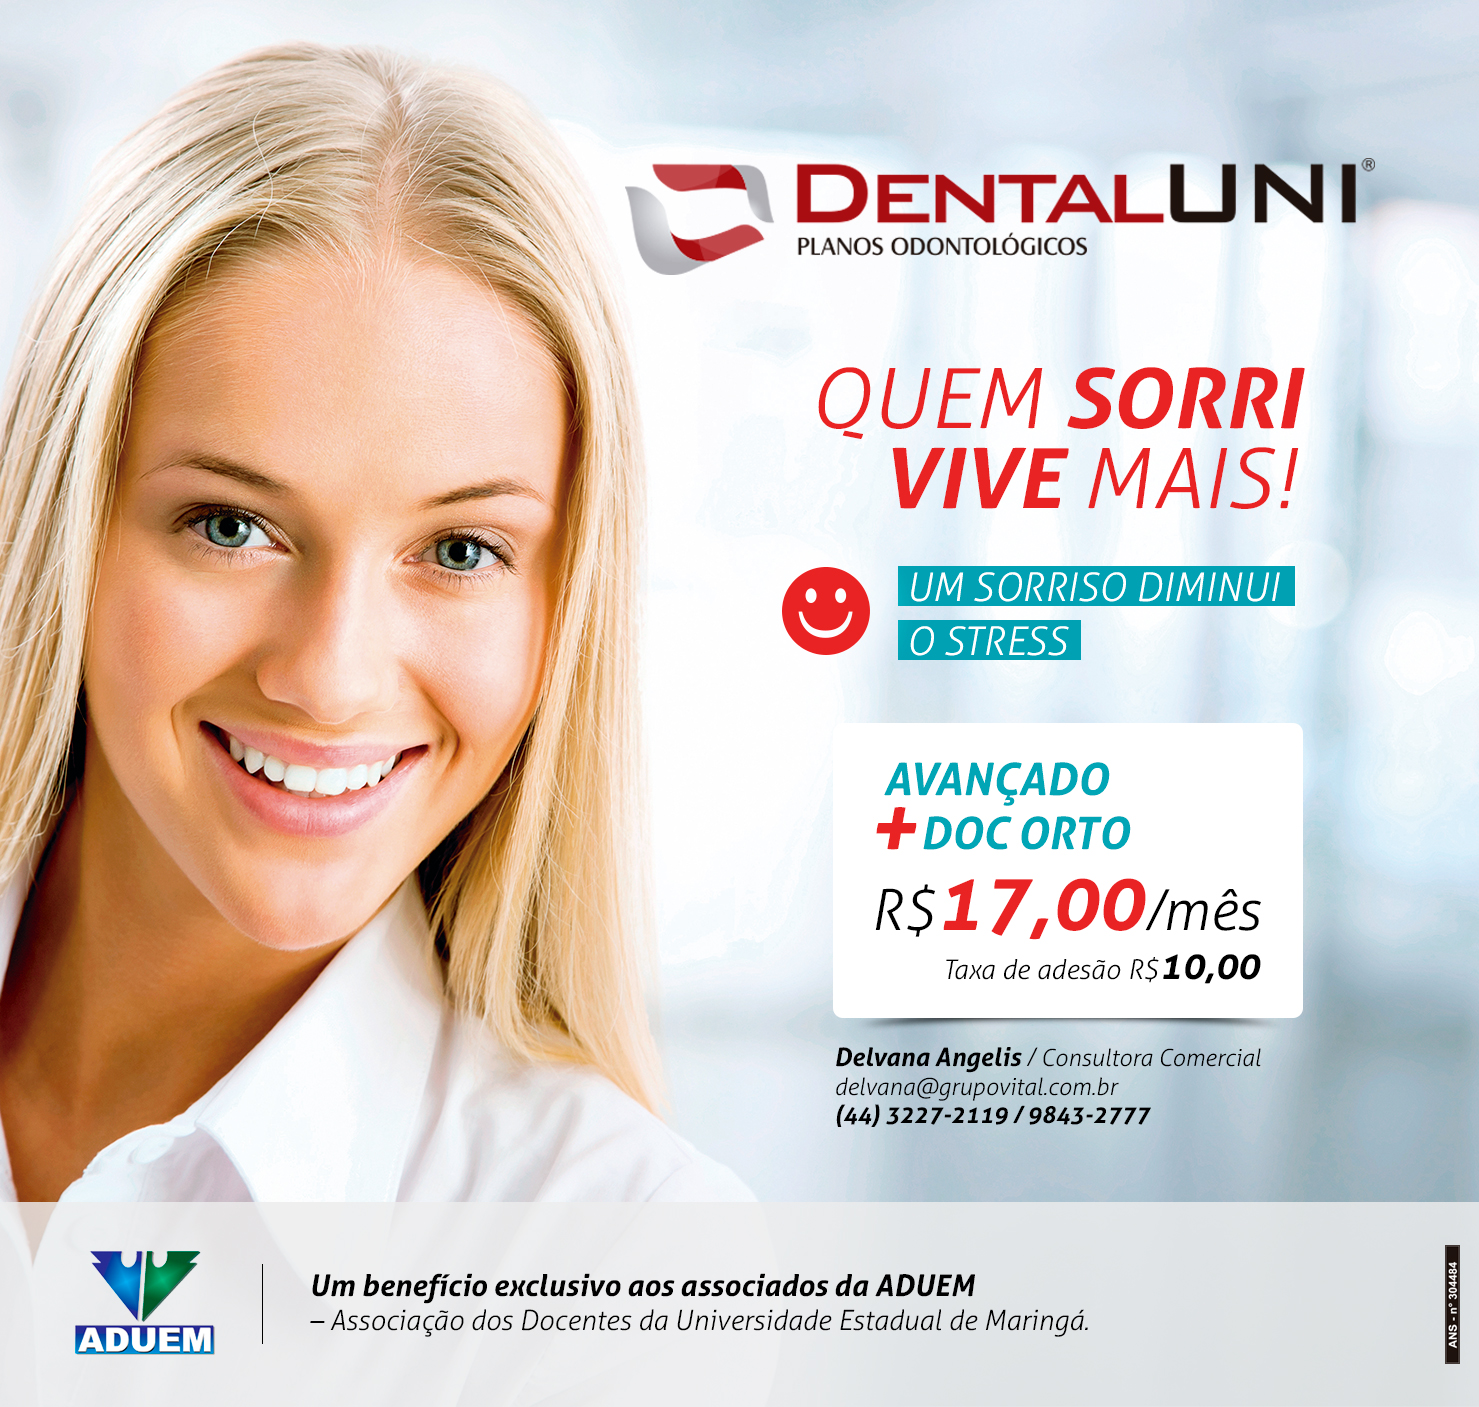 Dental Uni